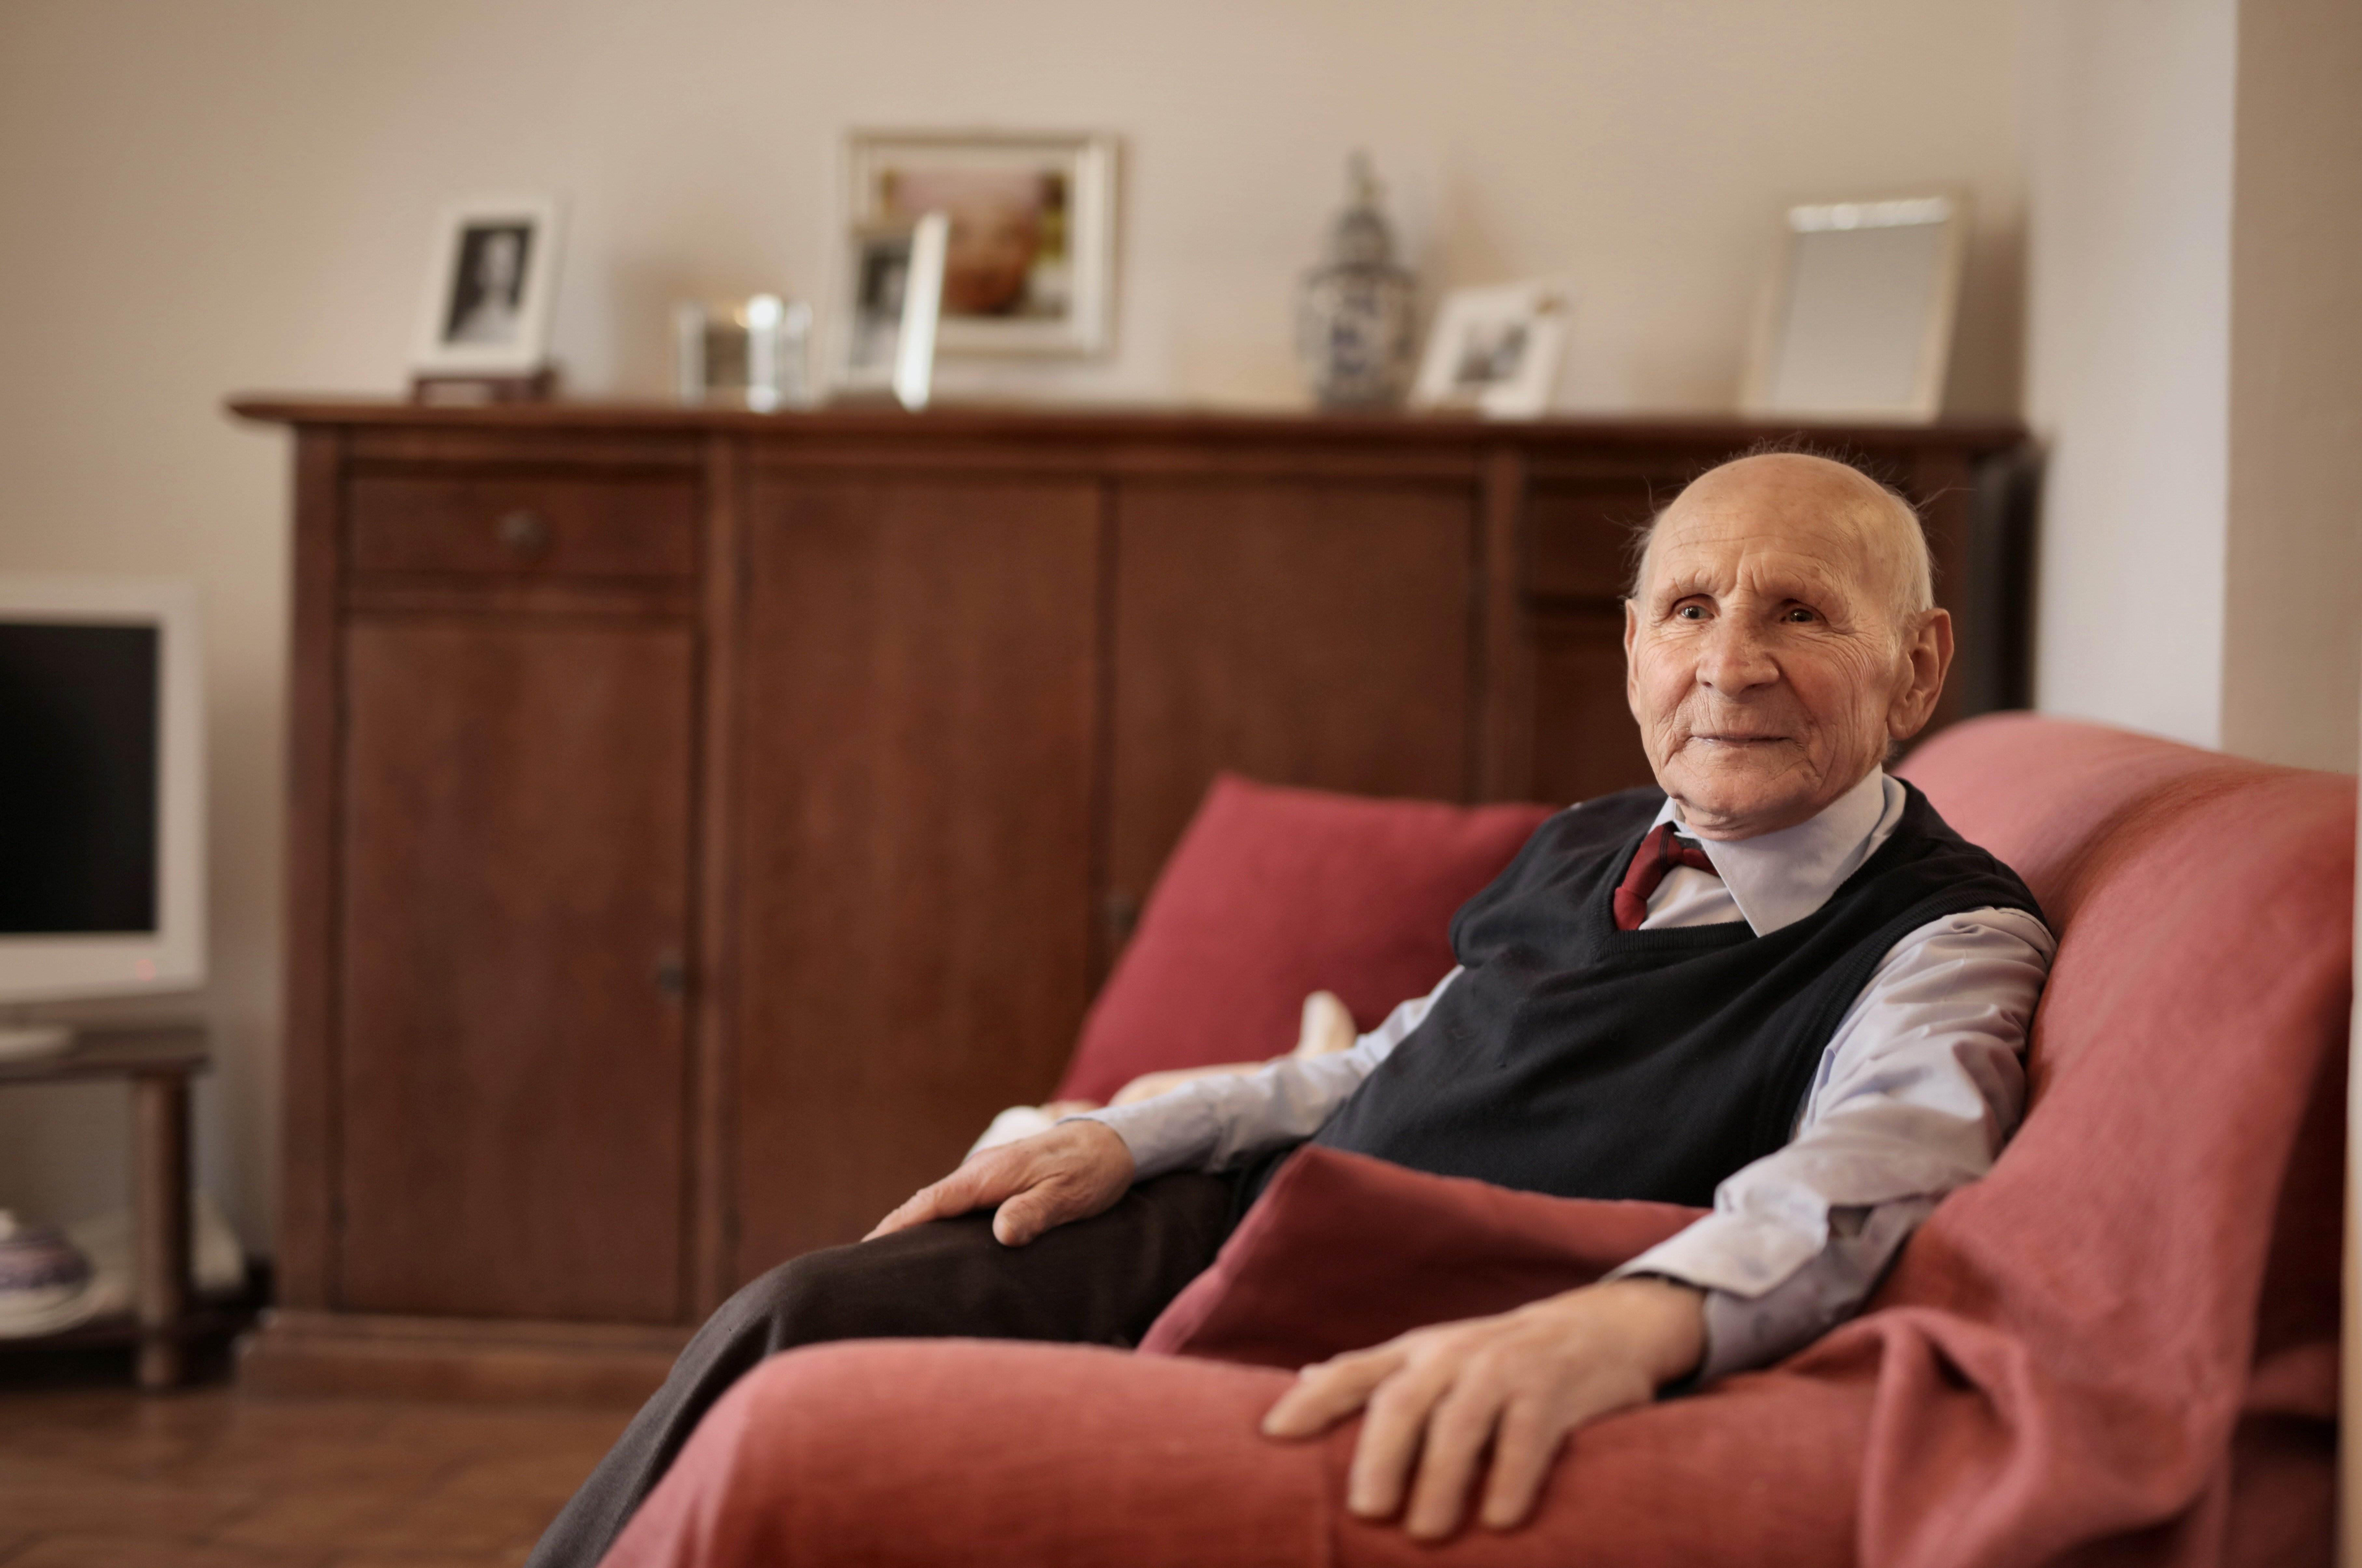 An elderly man sitting on a couch.   Pexels/ Andrea Piacquadio